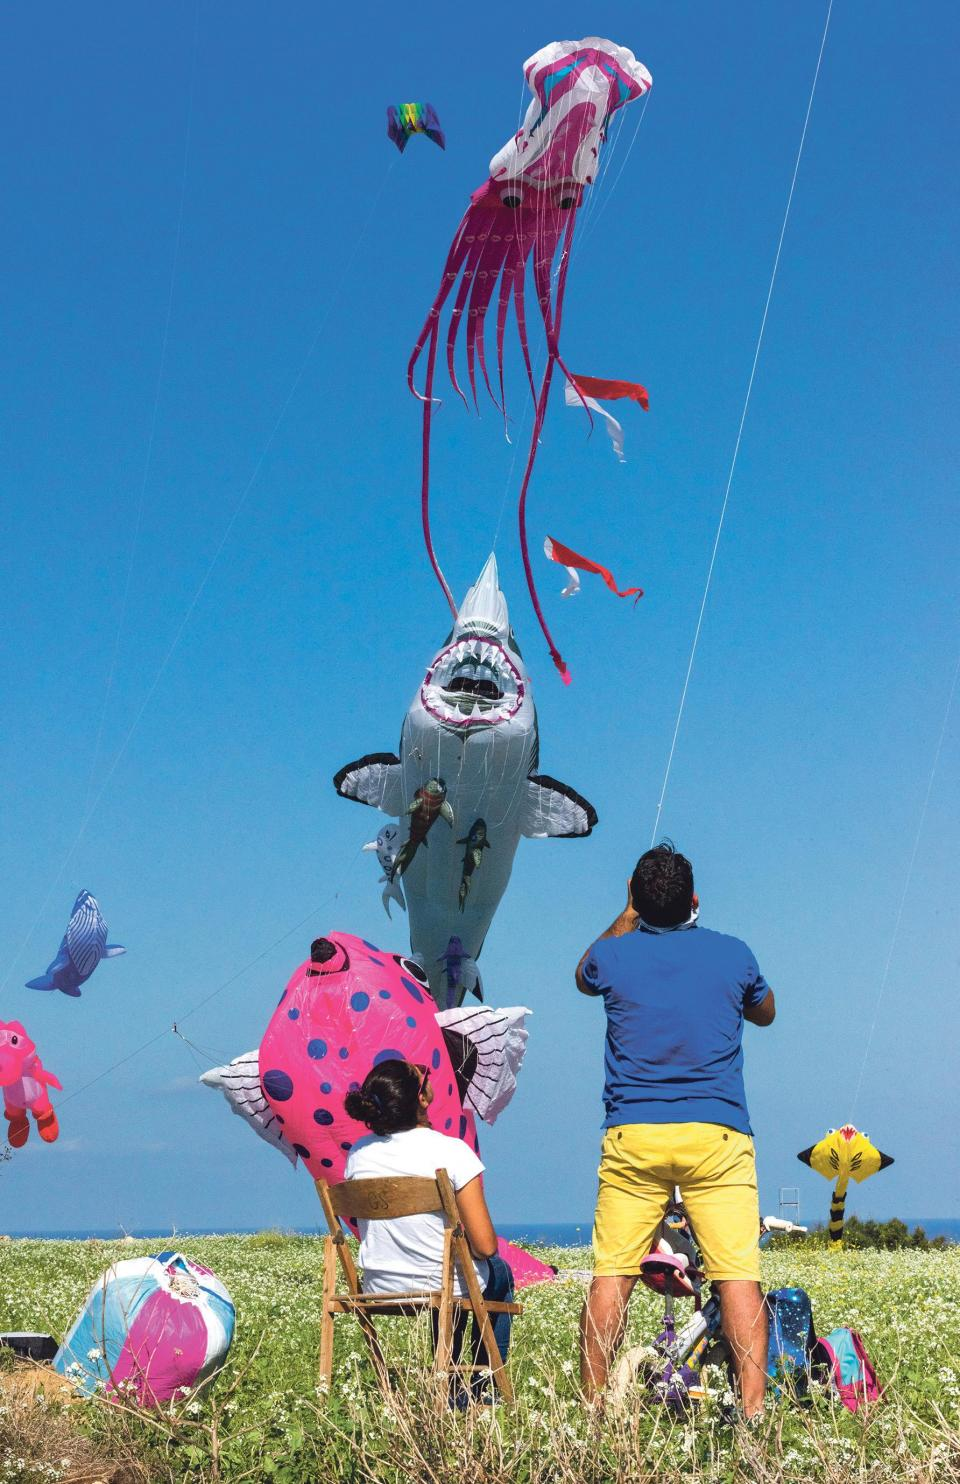 Kites depicting animals were among the festival's main attractions.